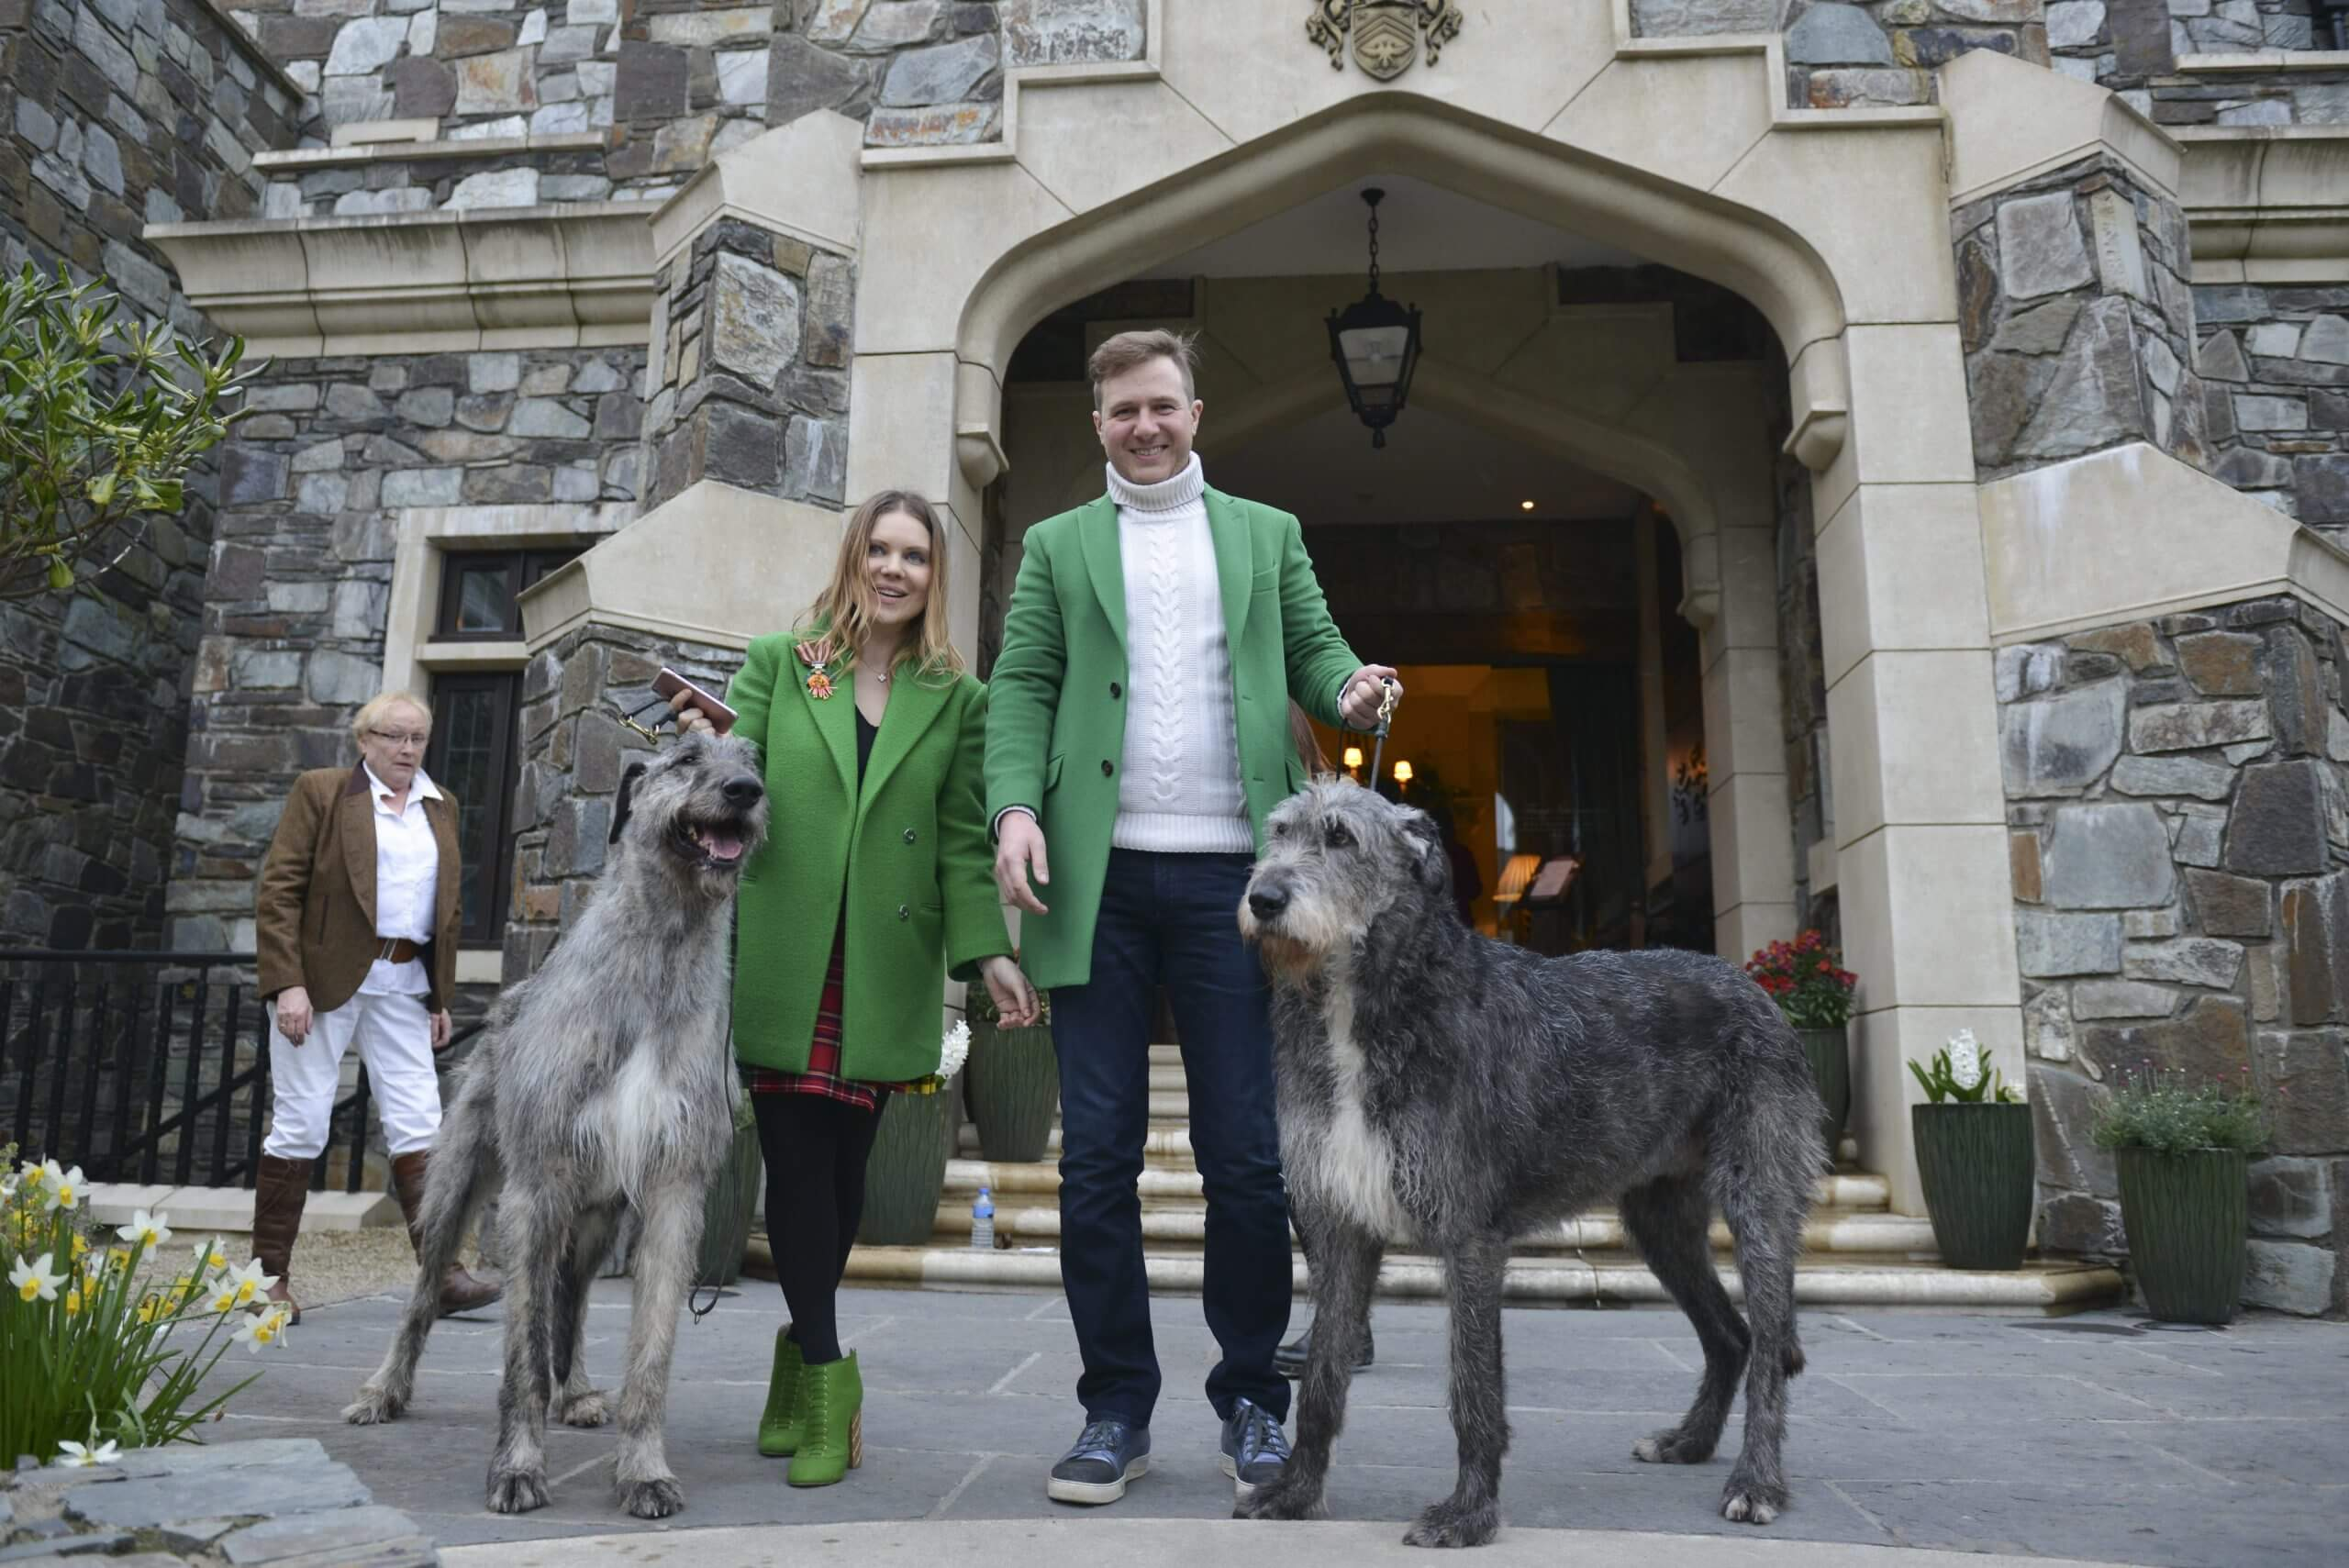 Couple With Green Jackets with Dogs'